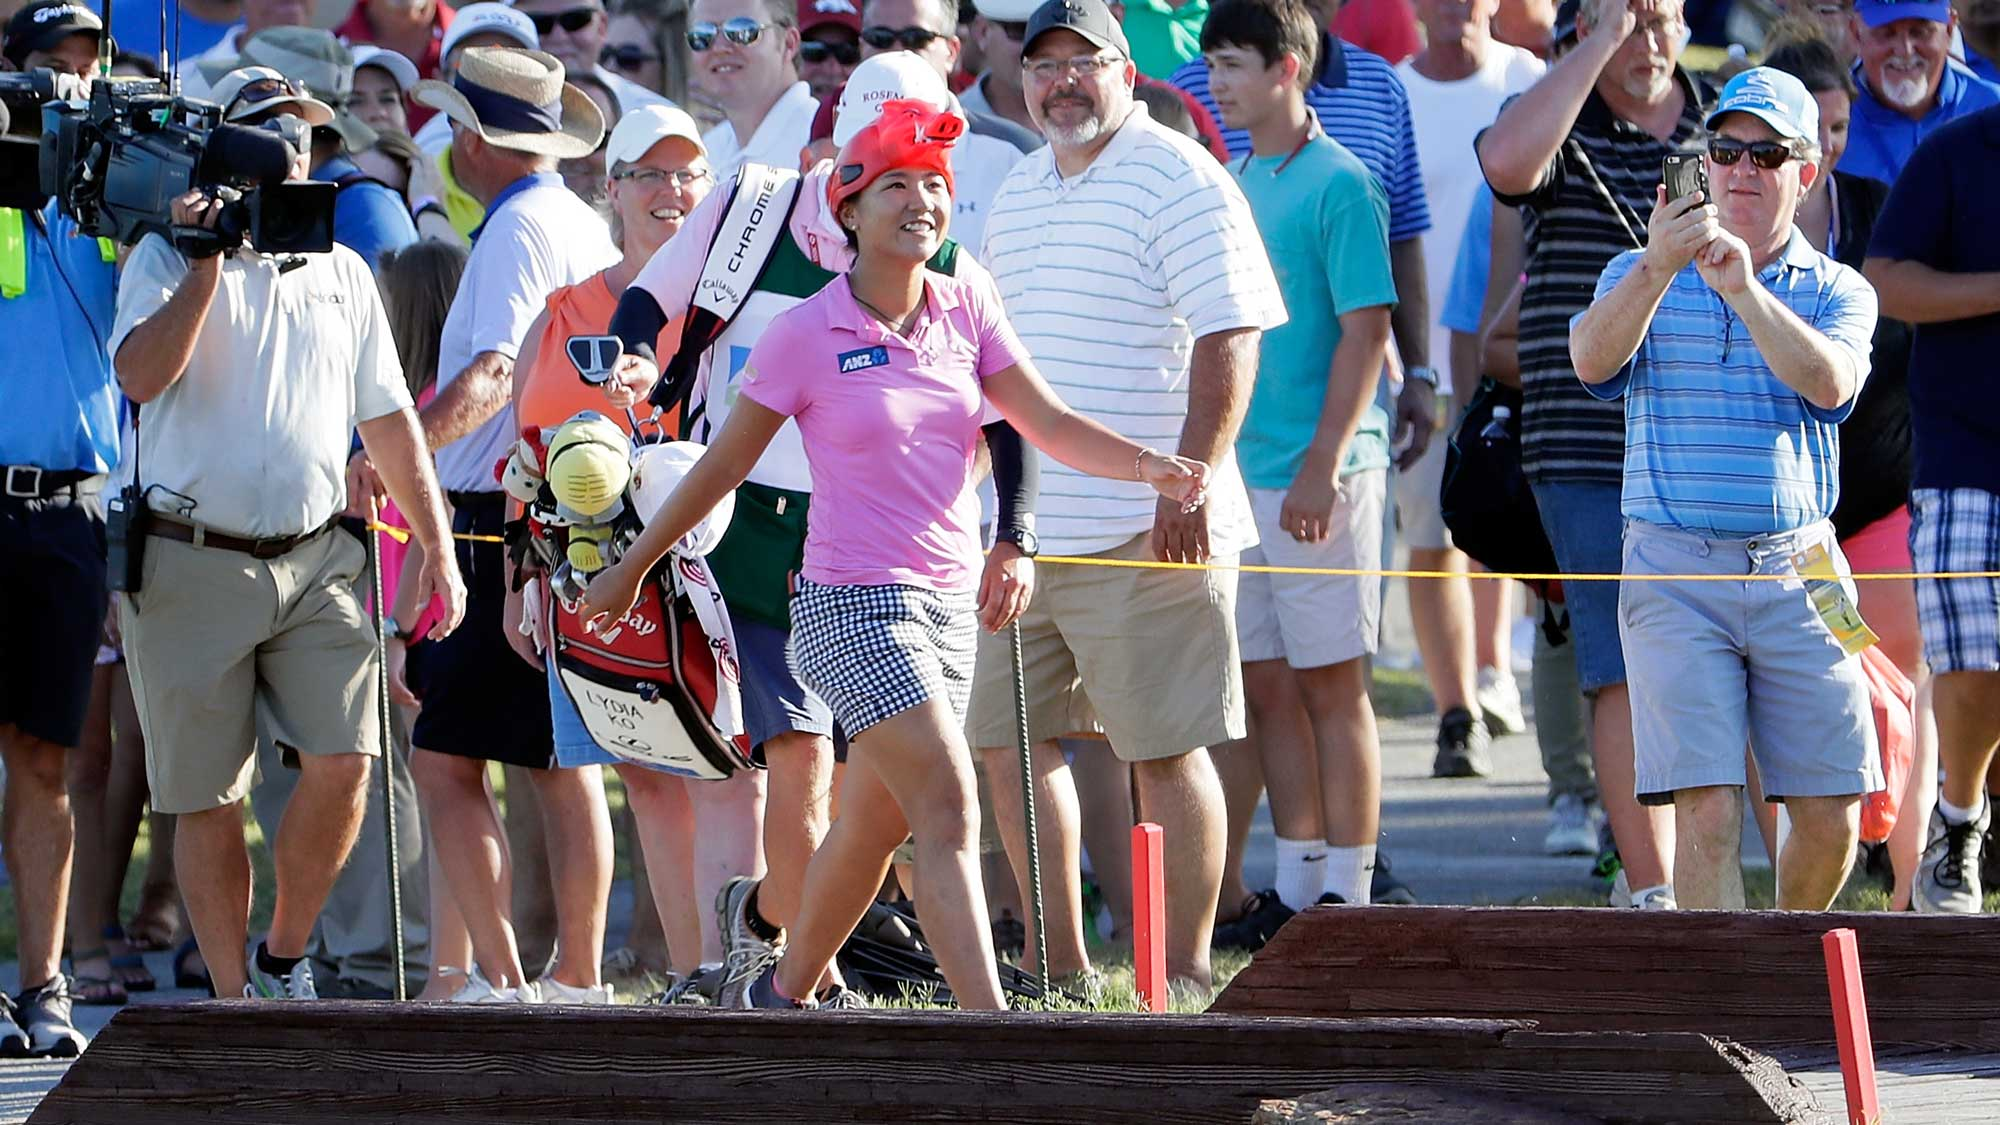 Lydia Ko of New Zealand walks toward the green on the 17th hole wearing an Arkansas Razorbacks hat on her way toward winning the Walmart NW Arkansas Championship